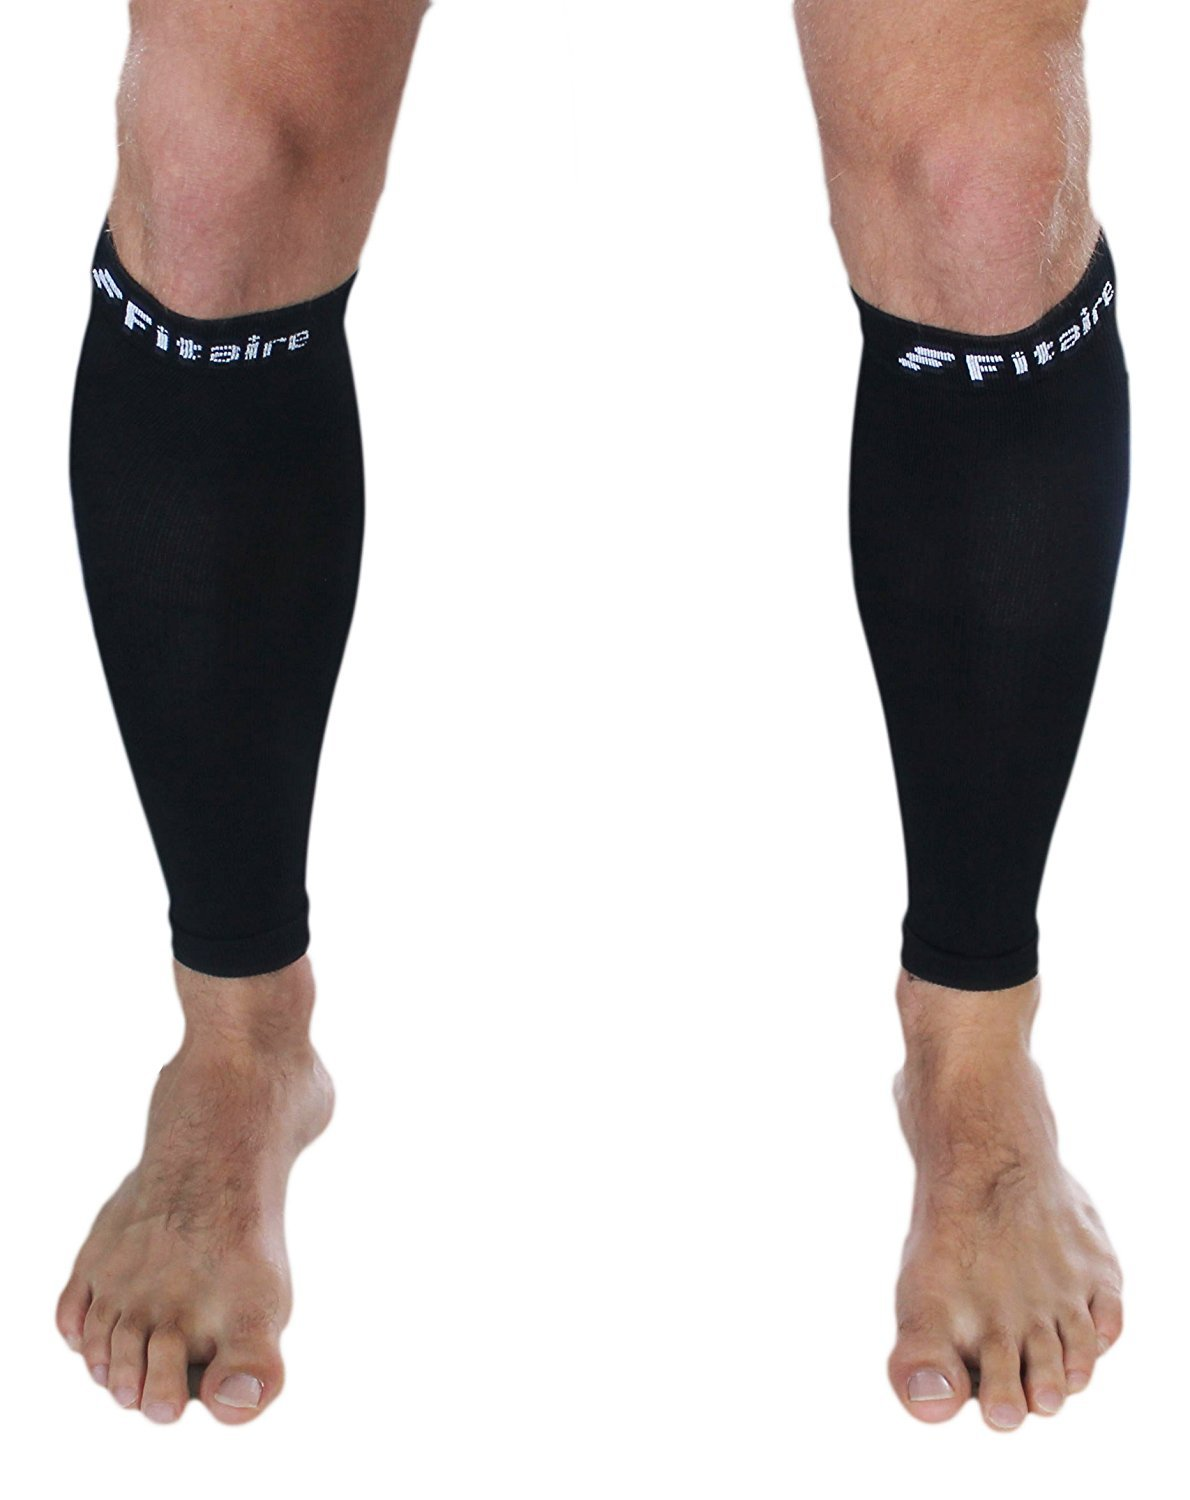 Calf Compression Sleeves (Pair) - Premium Quality Leg Sleeve, Helps Relieve Shin Splints. For Men and Women. Great for Running, Cycling and Walking. by Generic